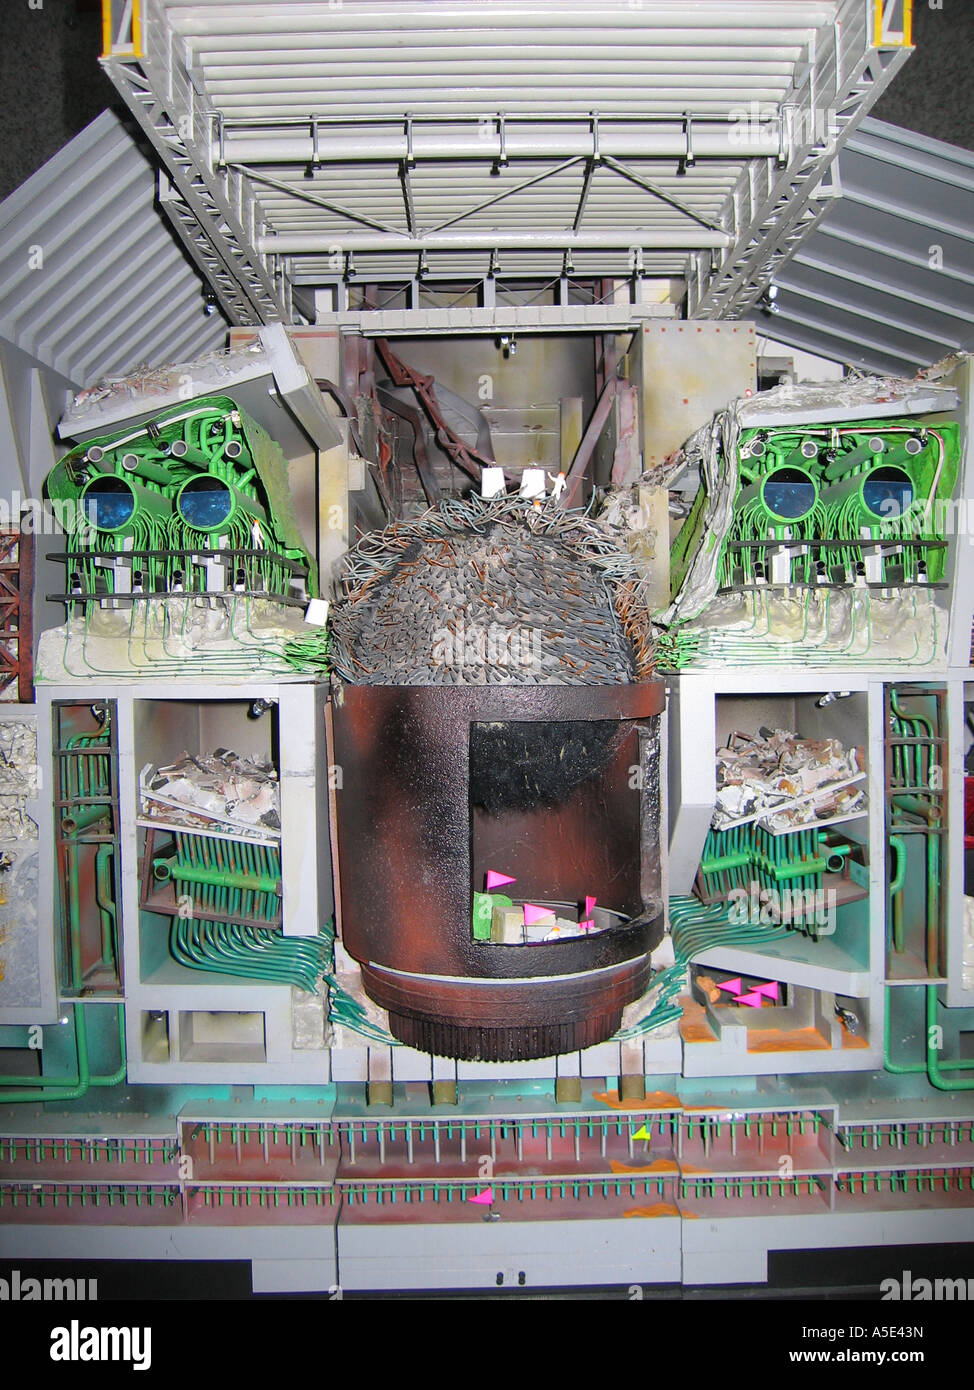 Chernobyl reactor 4 model in the visitor centre at the site of the nuclear disaster - Stock Image